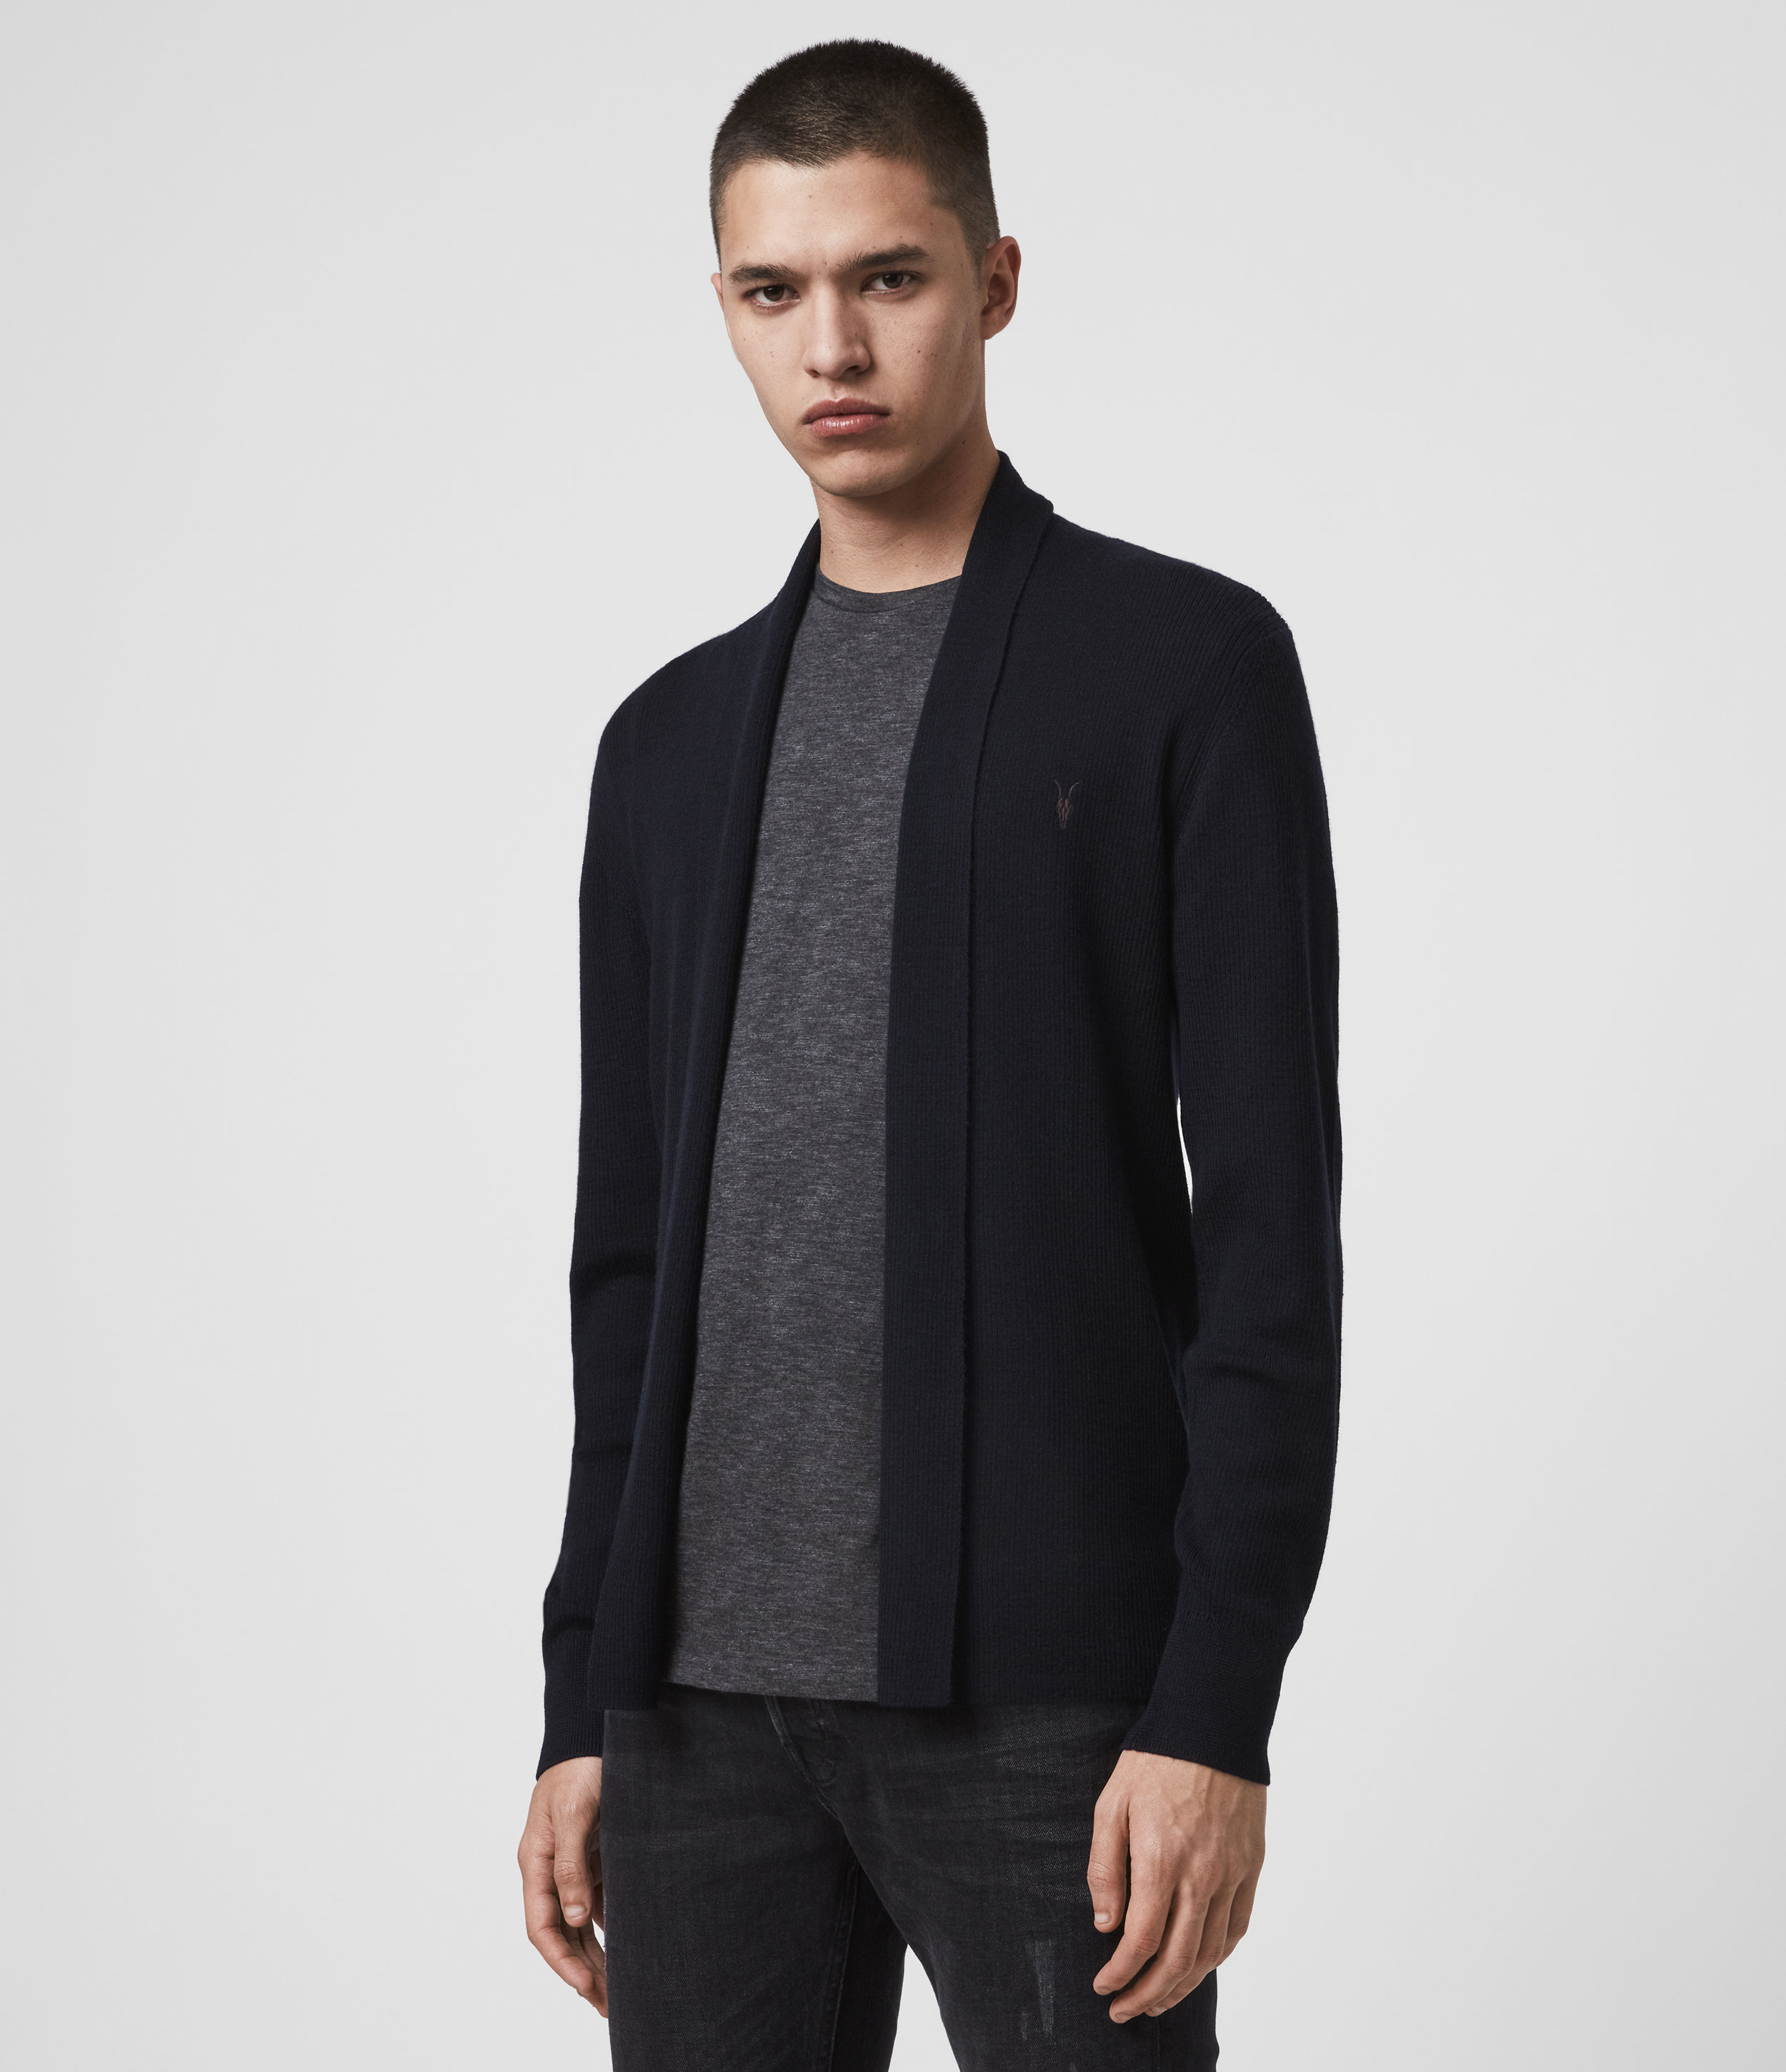 AllSaints Men's Merino Wool Lightweight Mode Open Cardigan, Blue, Size: L